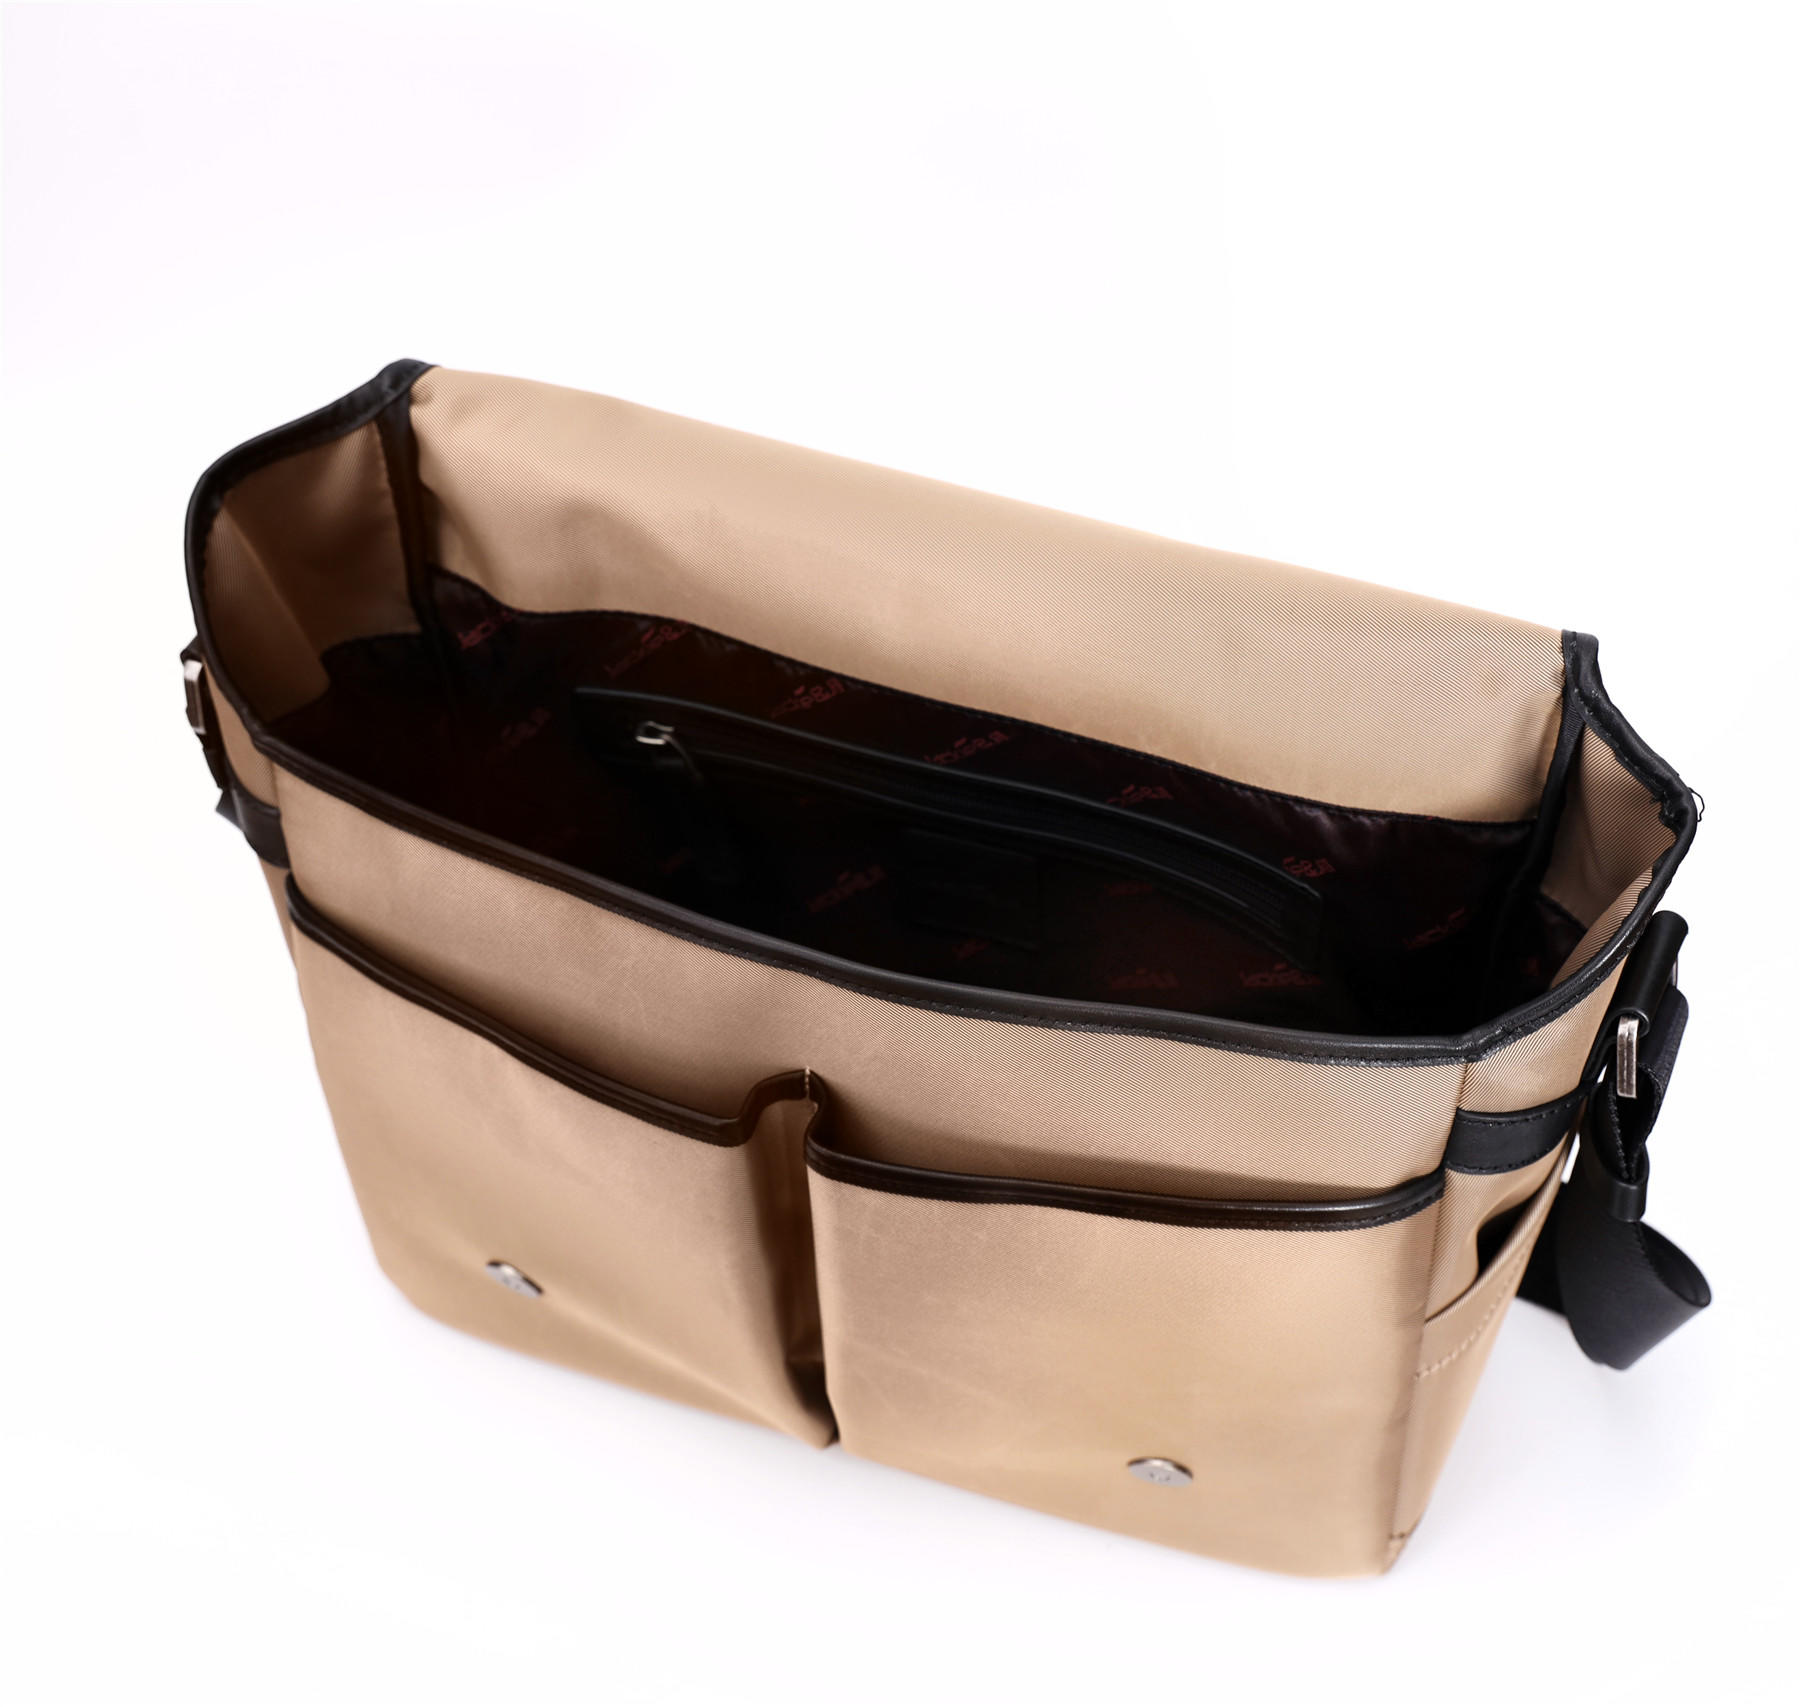 Messenger Bags nylon fabric decoration with leather